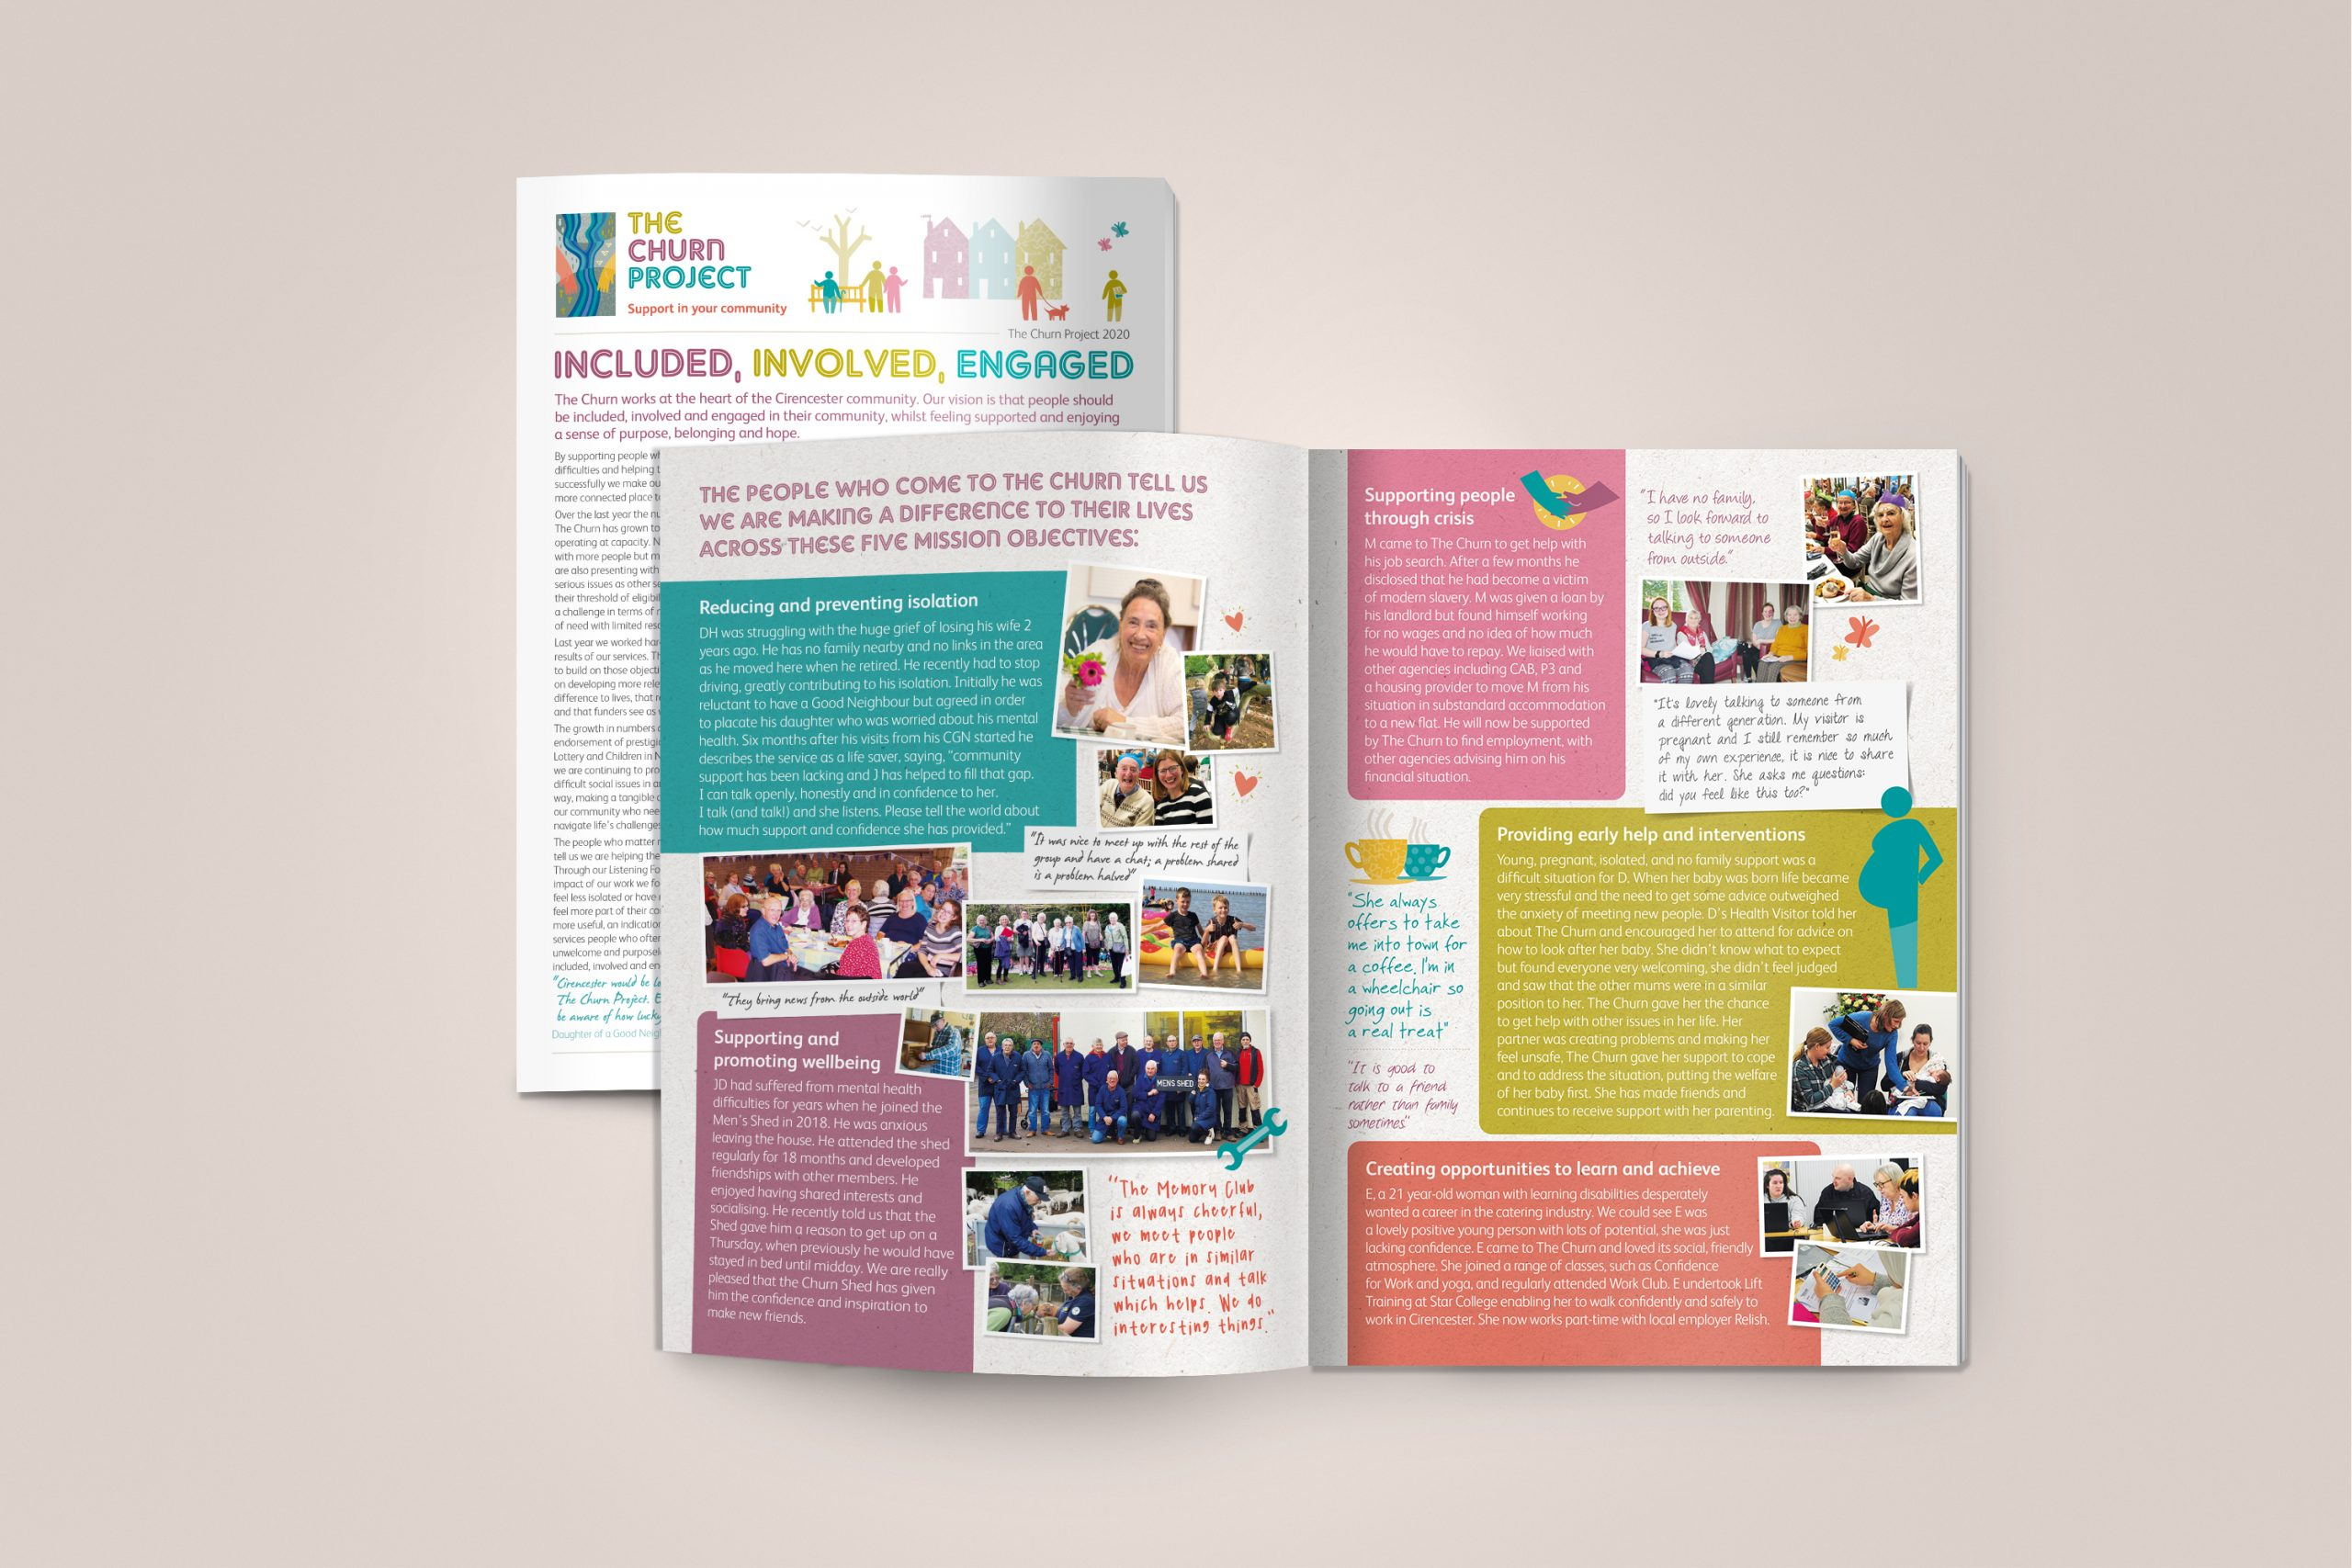 Annual General Meeting (AGM) report created for The Churn Project